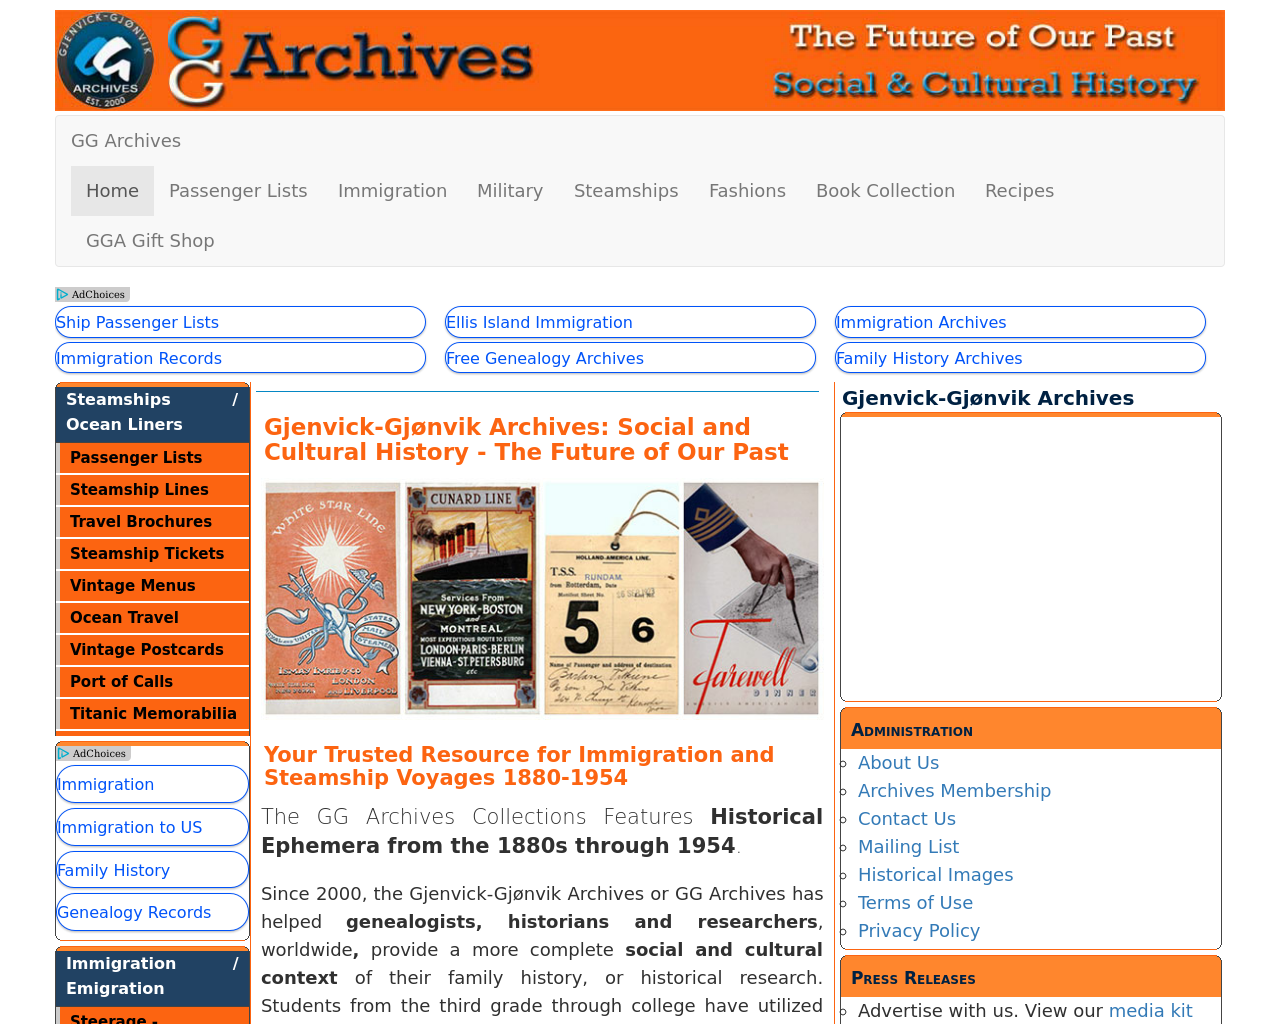 GG-Archives-Advertising-Reviews-Pricing